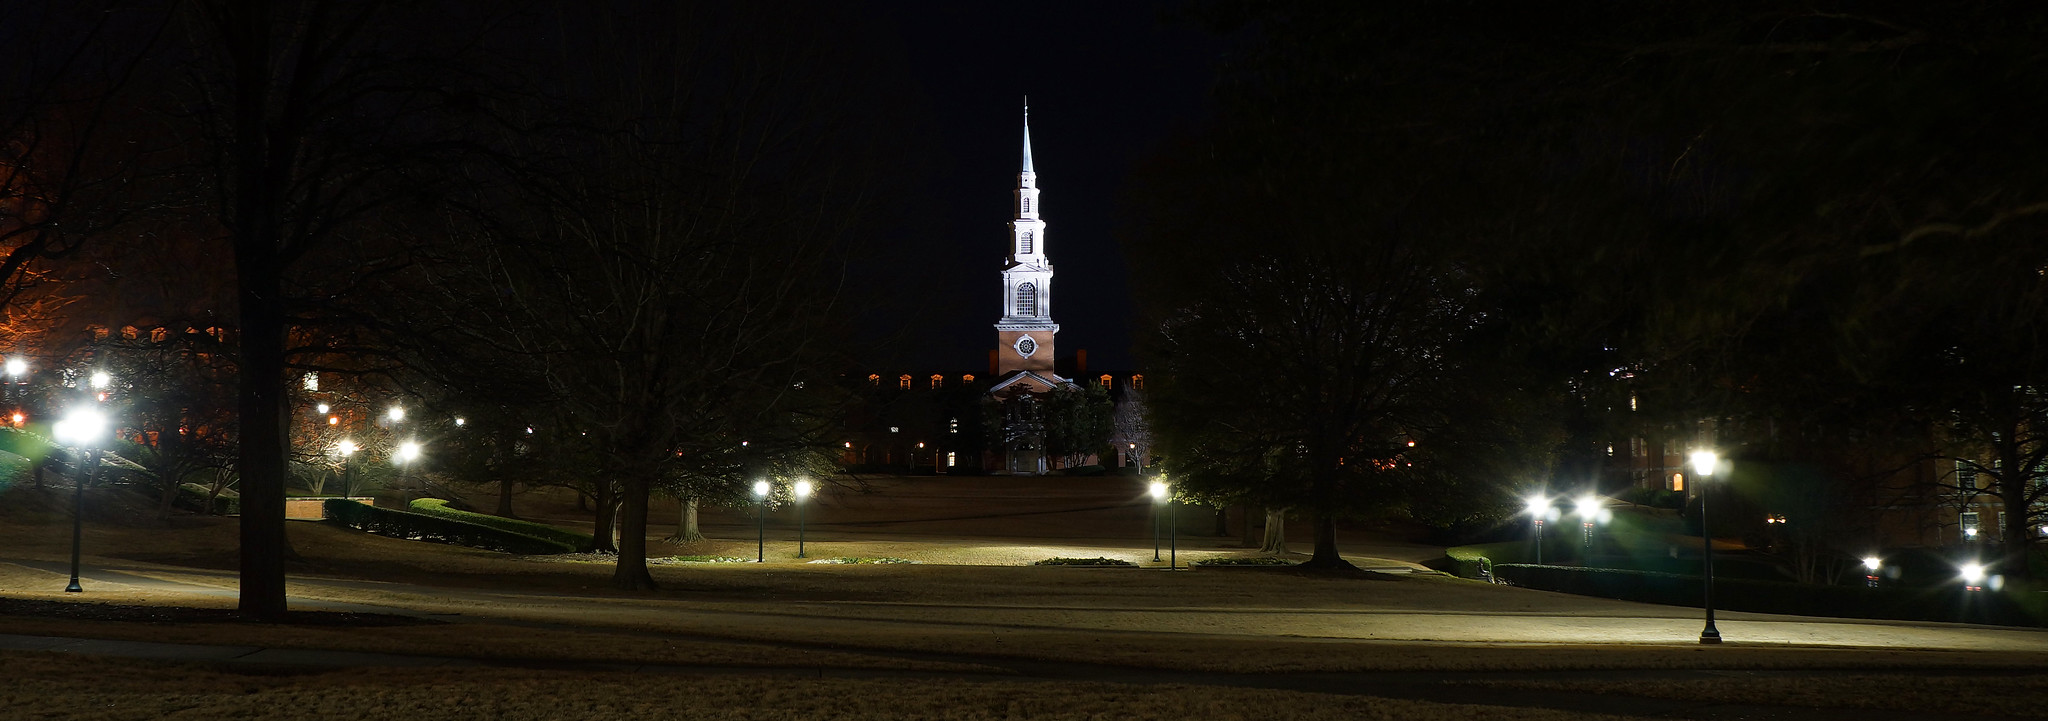 Samford University at Night 4